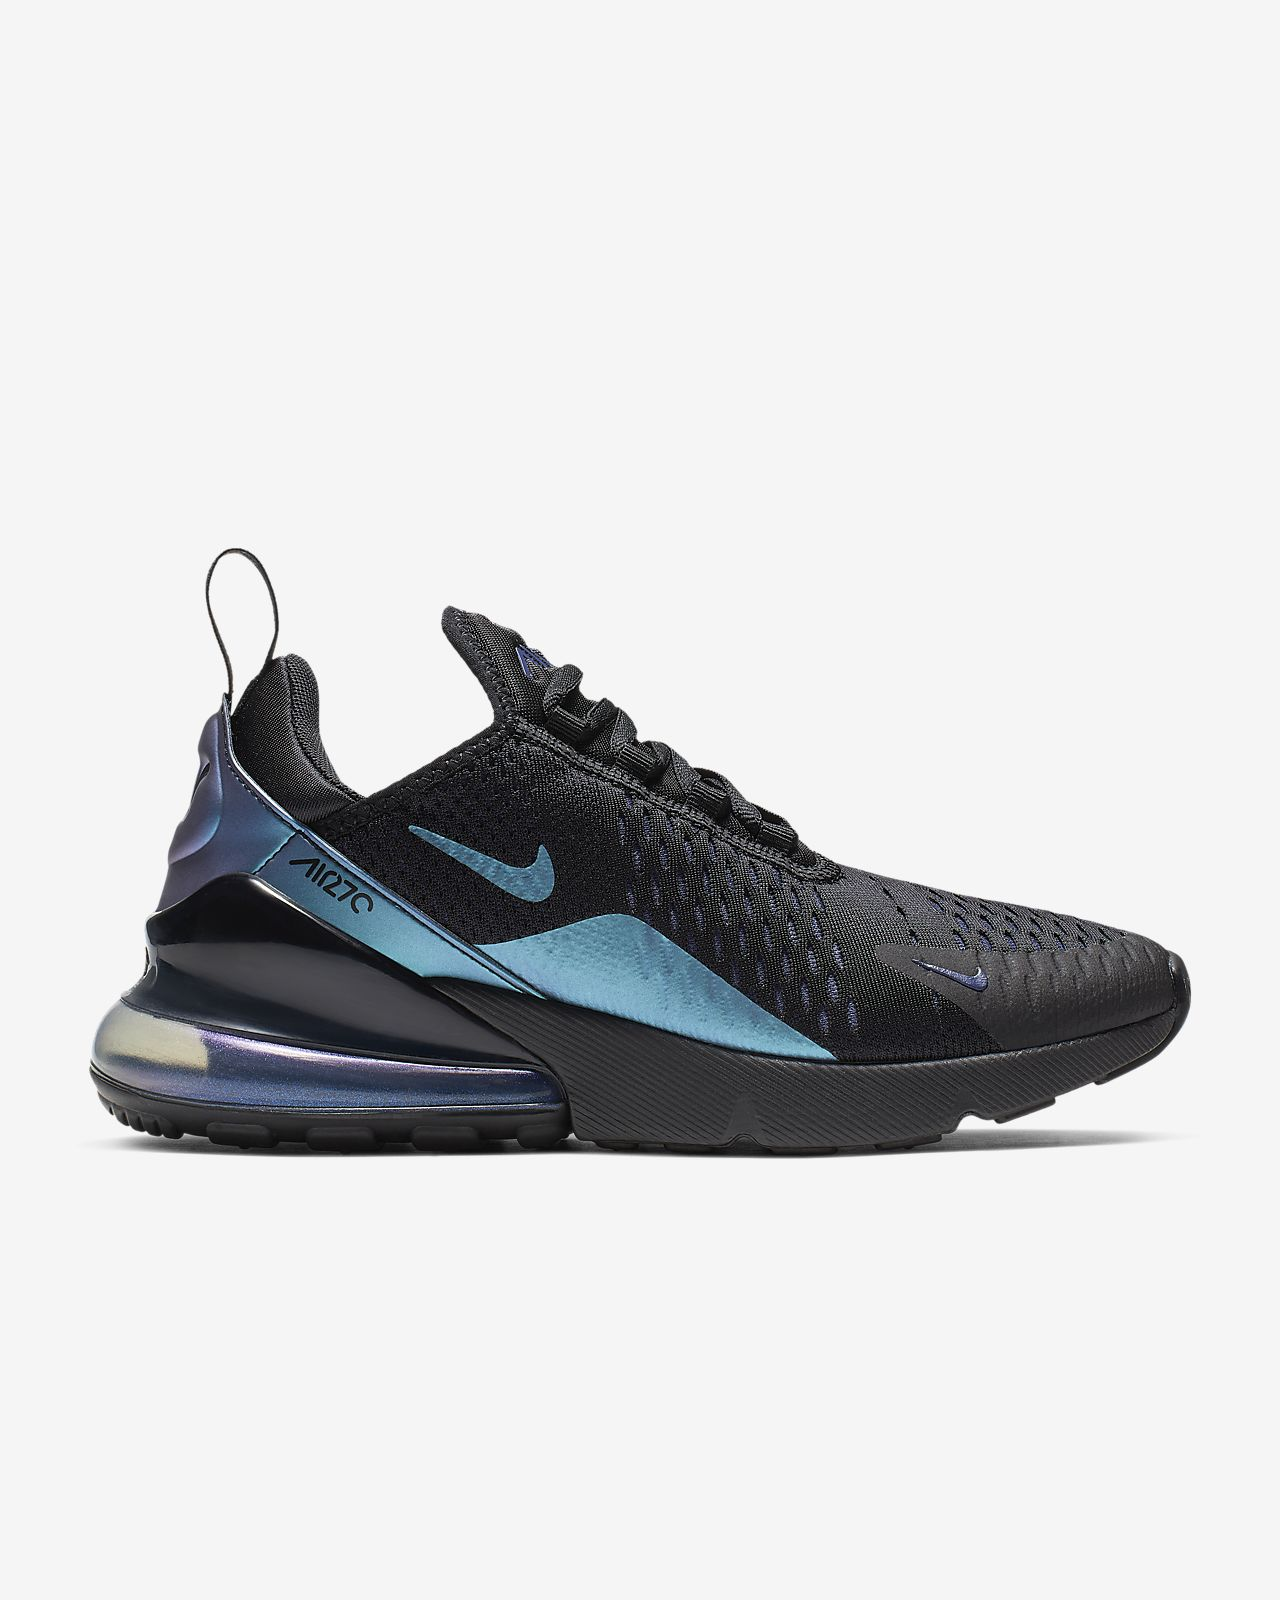 478313af394 Chaussure Nike Air Max 270 pour Femme. Nike.com FR